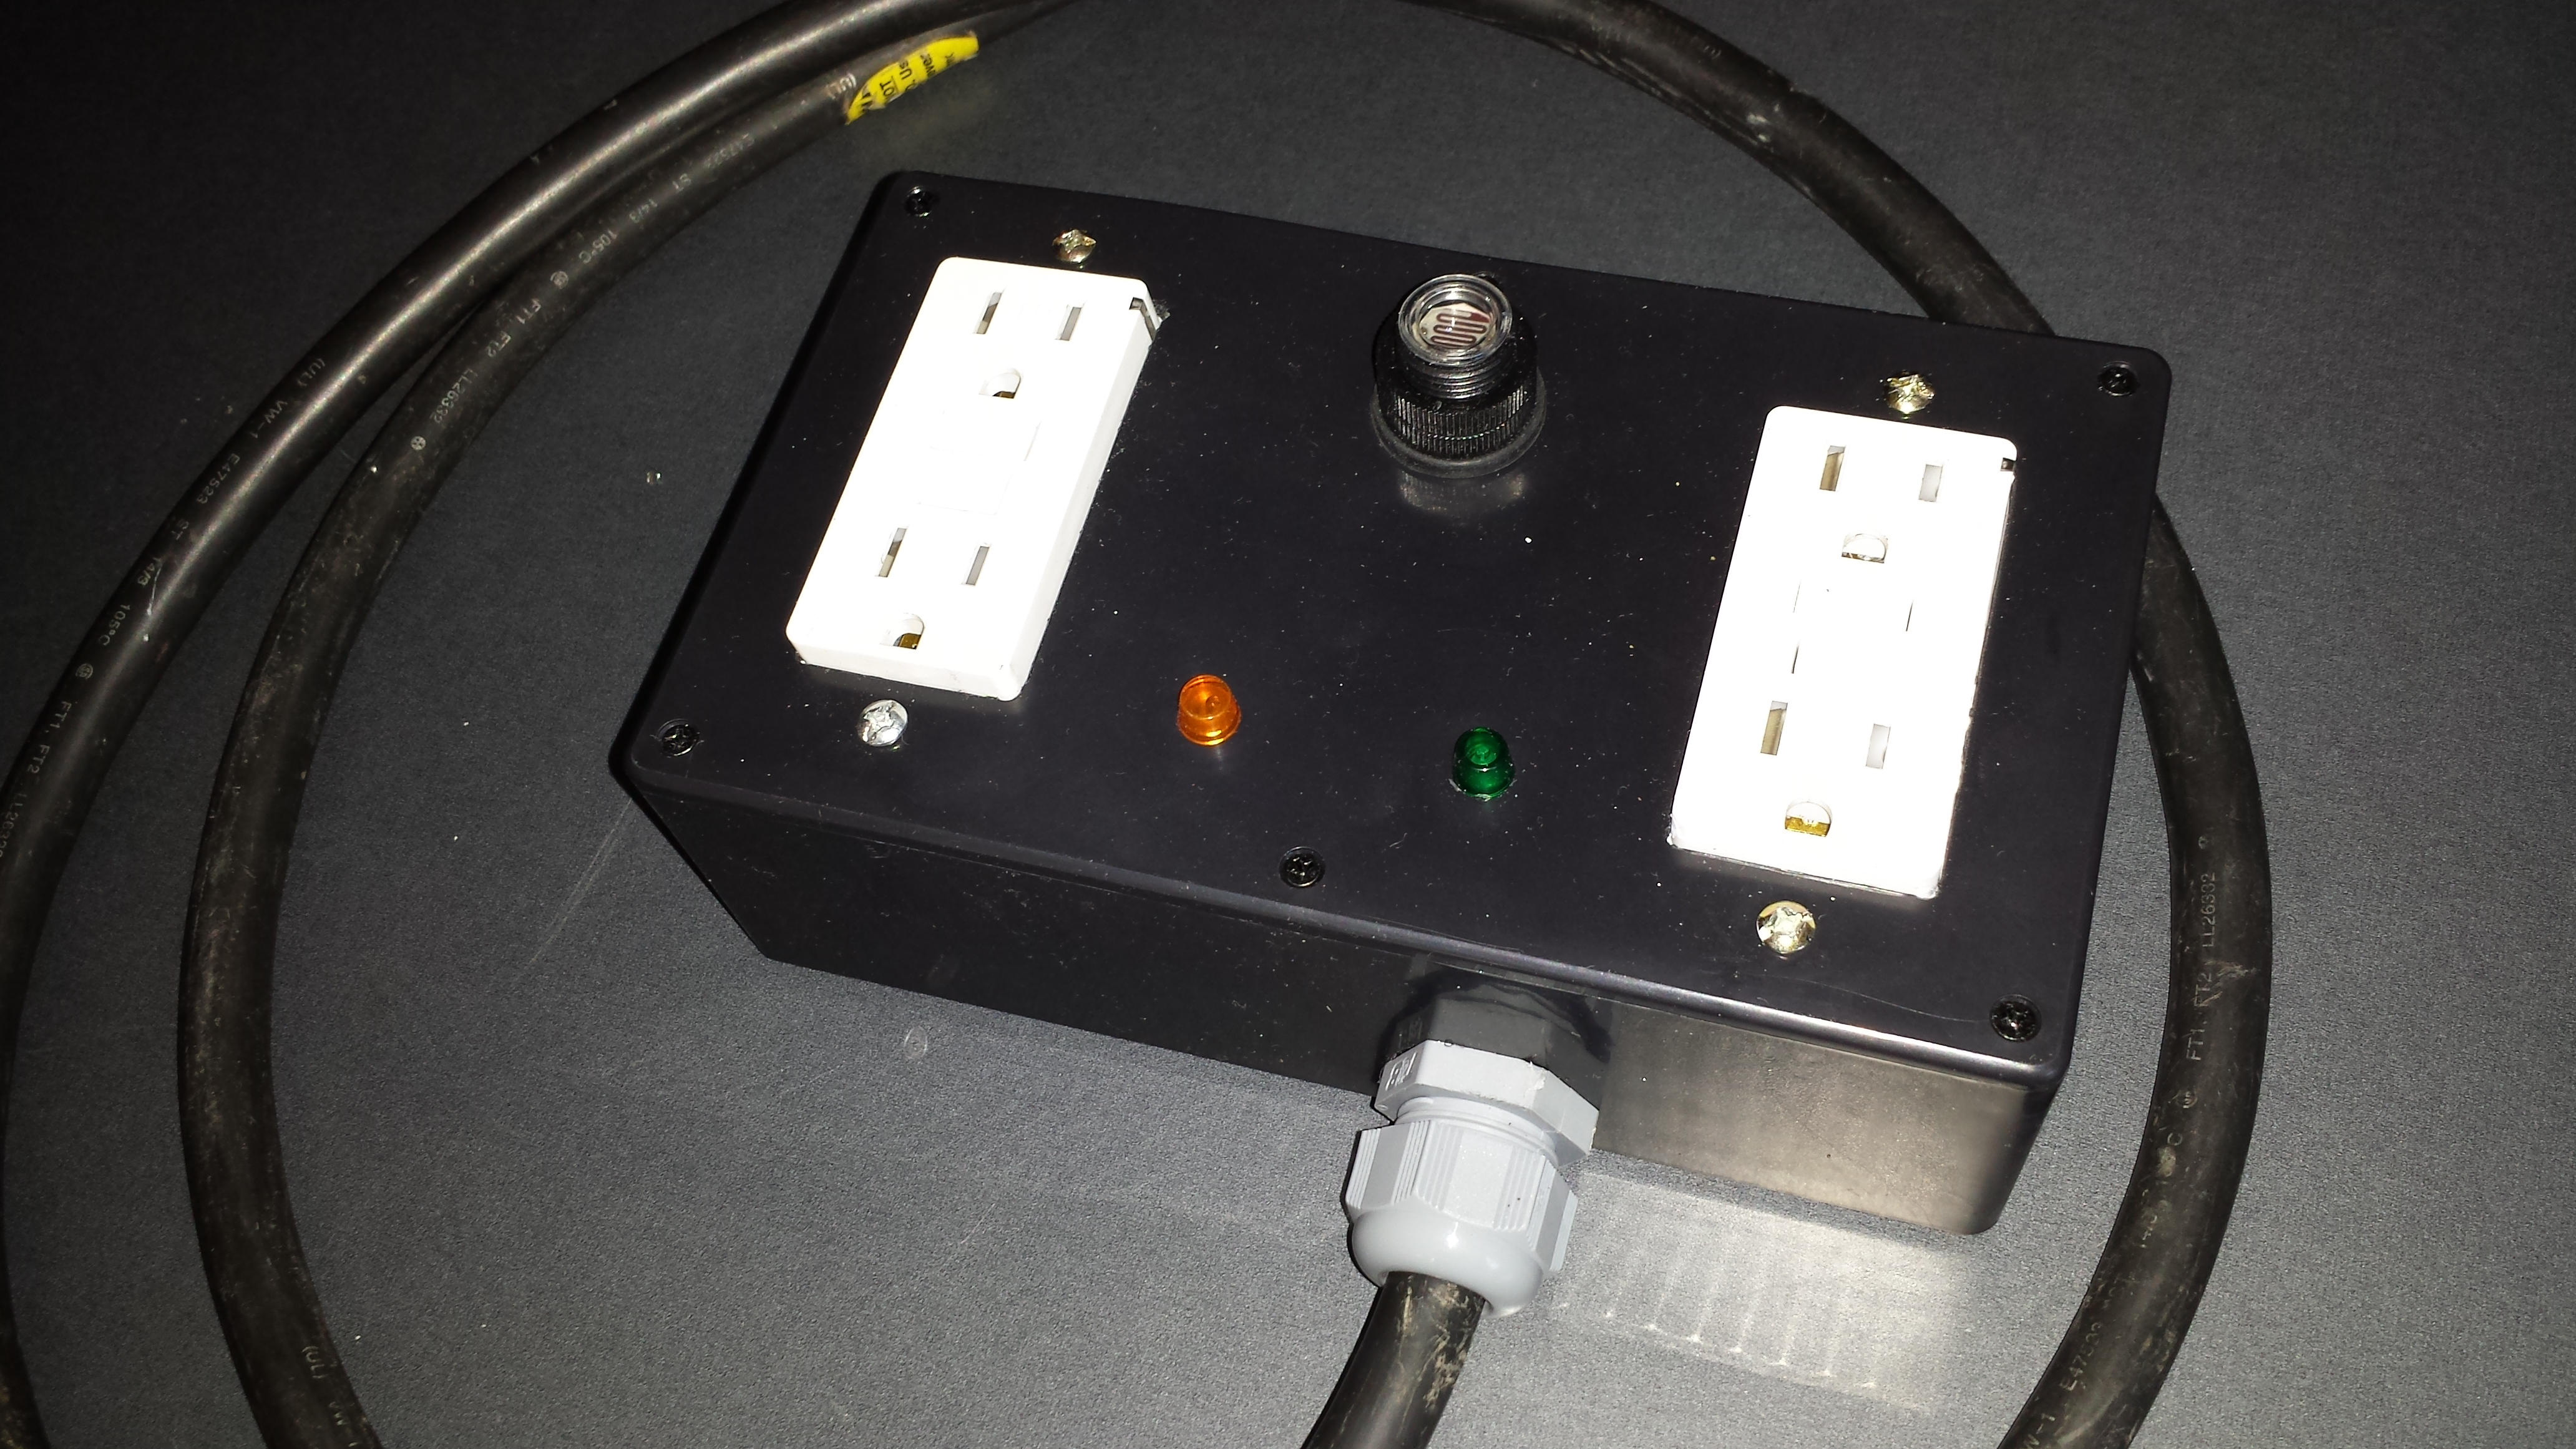 Photo Sensor Controlled Outlet (turns on or off at daylight or nightime)